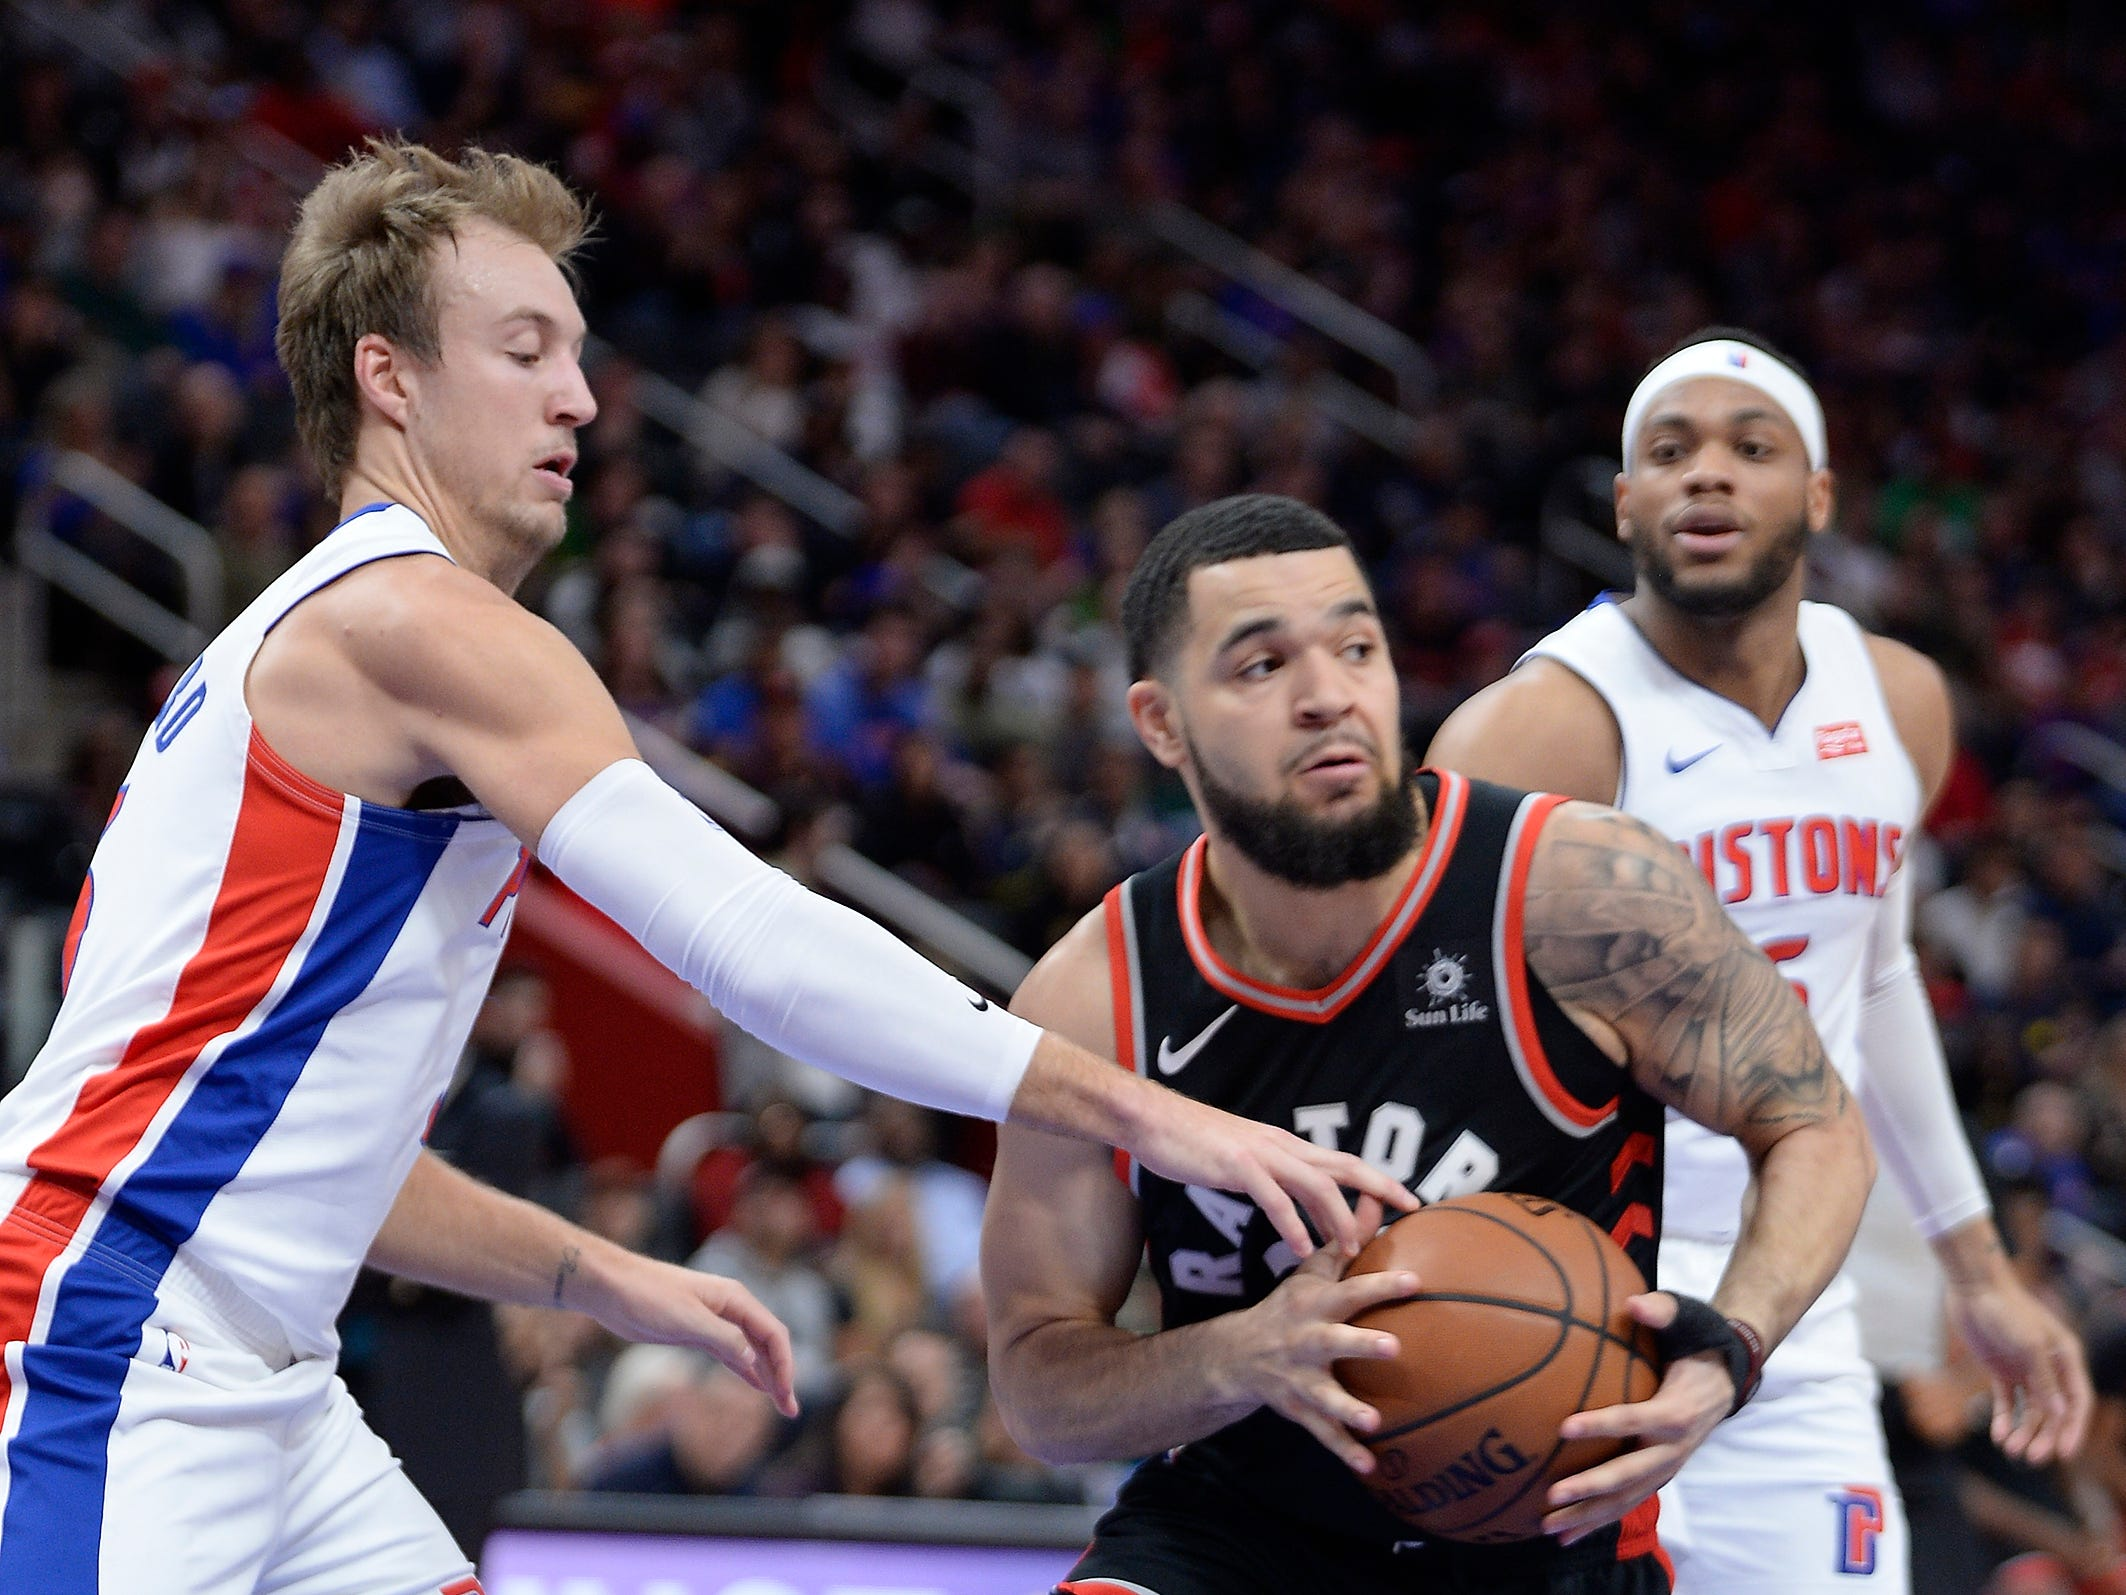 Raptors' Fred Van Vleet looks for room around Pistons' Luke Kennard in the first quarter.